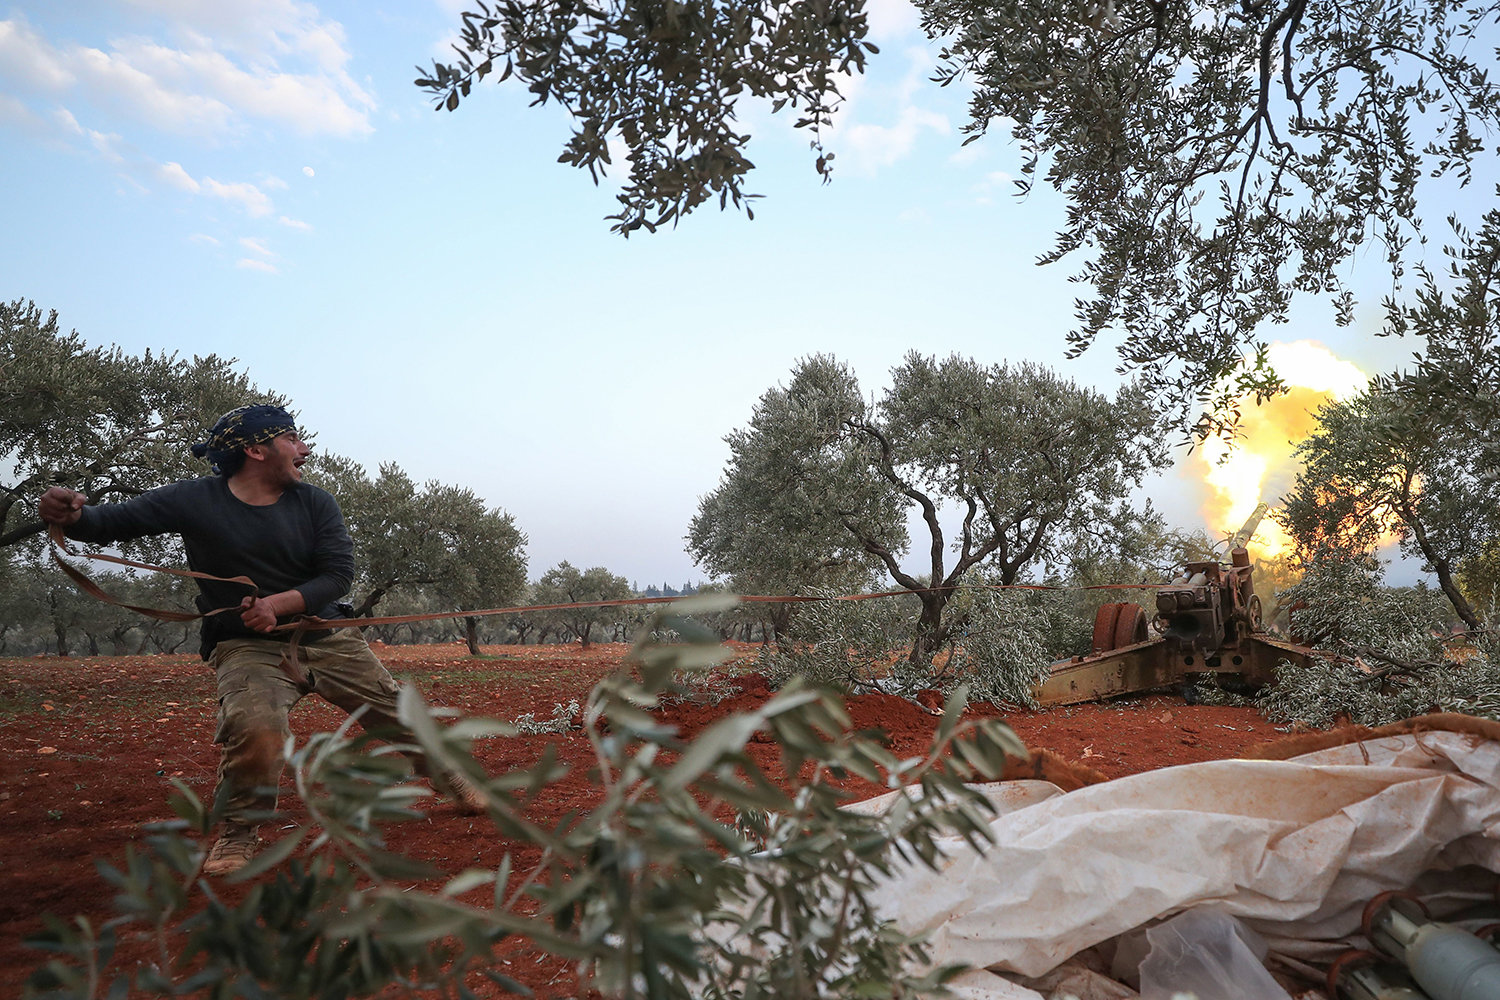 A rebel fighter fires a cannon amid clashes with government forces in the last major rebel bastion of Idlib in northwestern Syria on Feb. 6. OMAR HAJ KADOUR/AFP via Getty Images